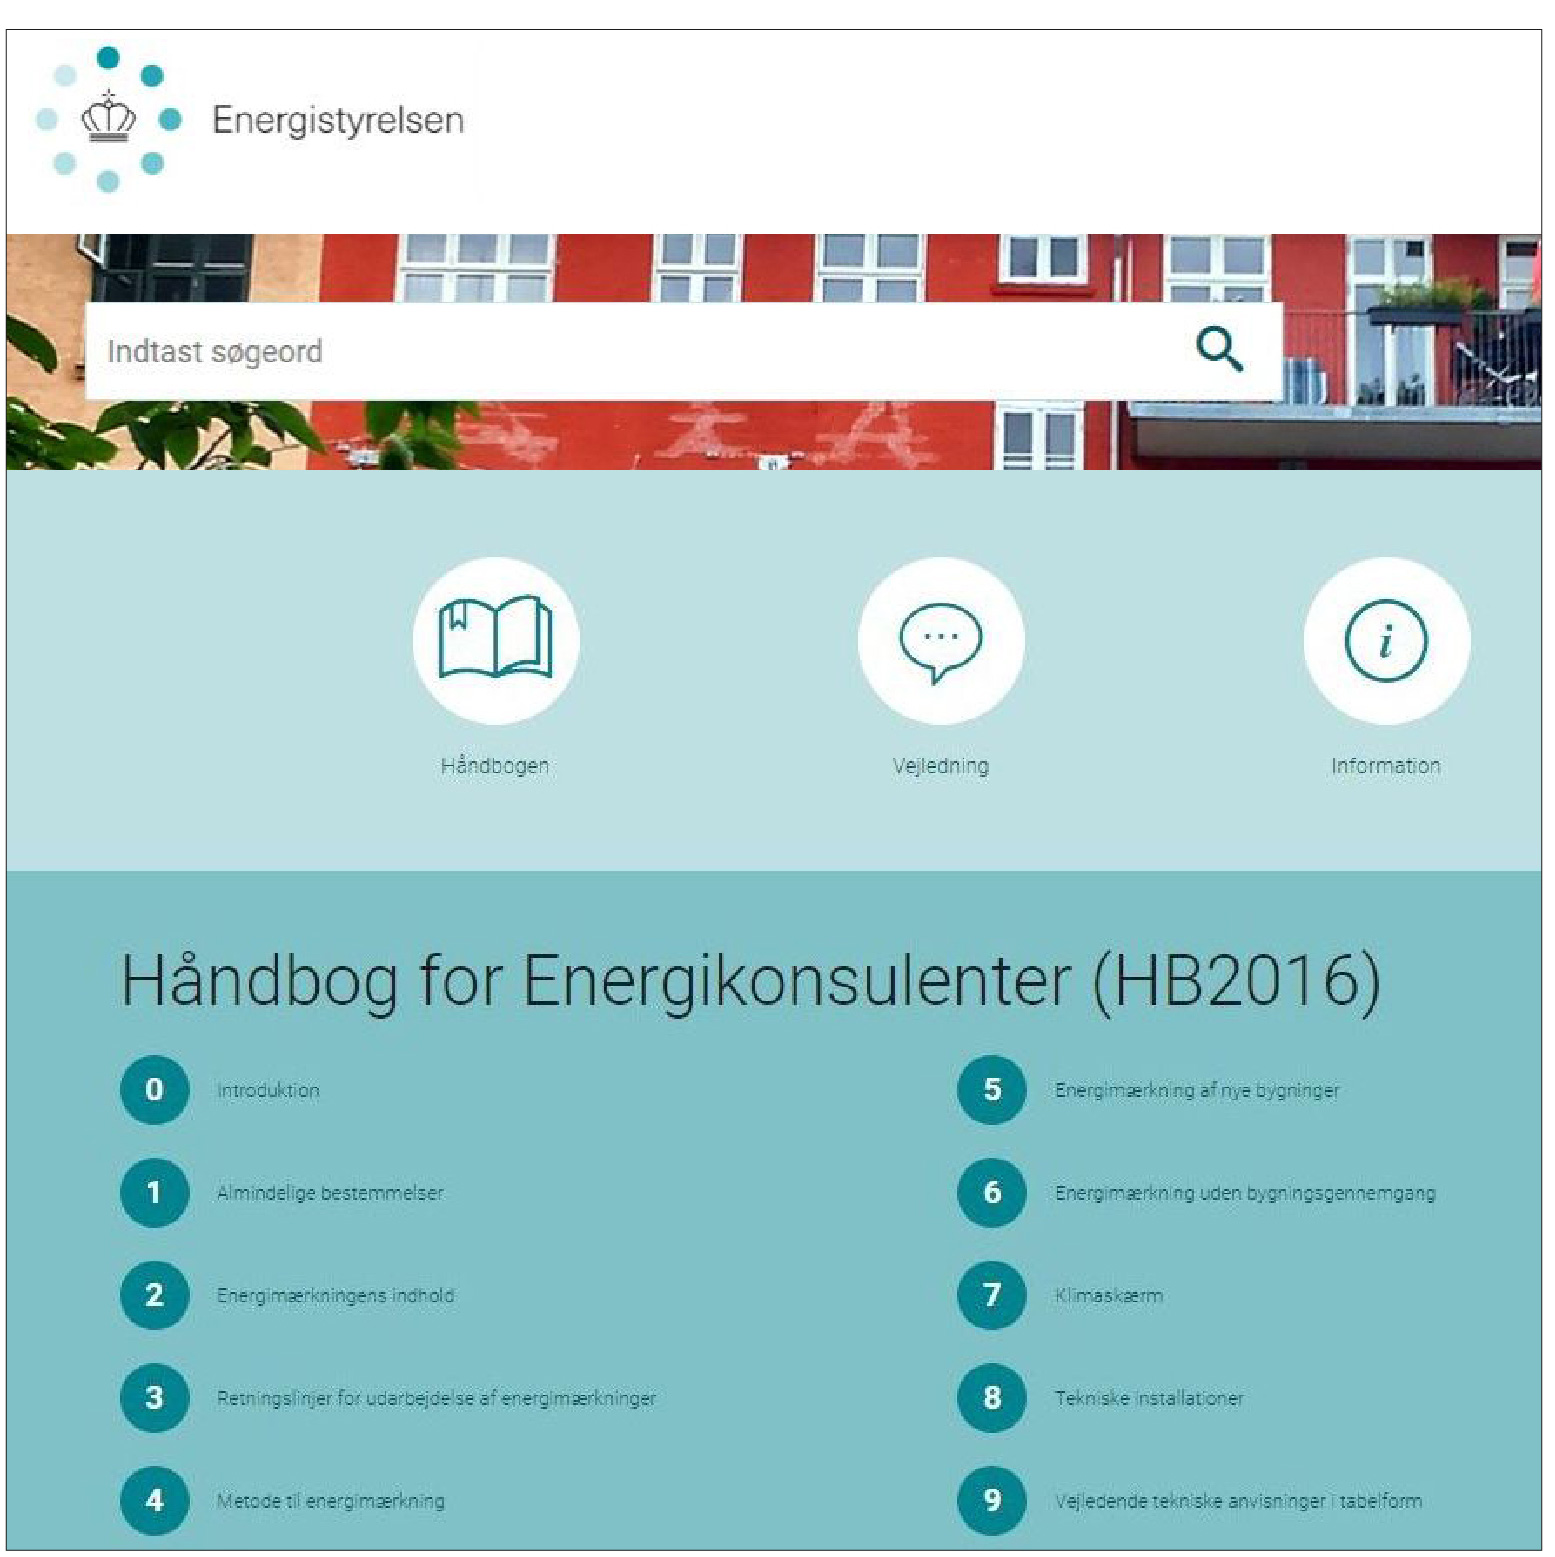 Håndbog for energikonsulenter